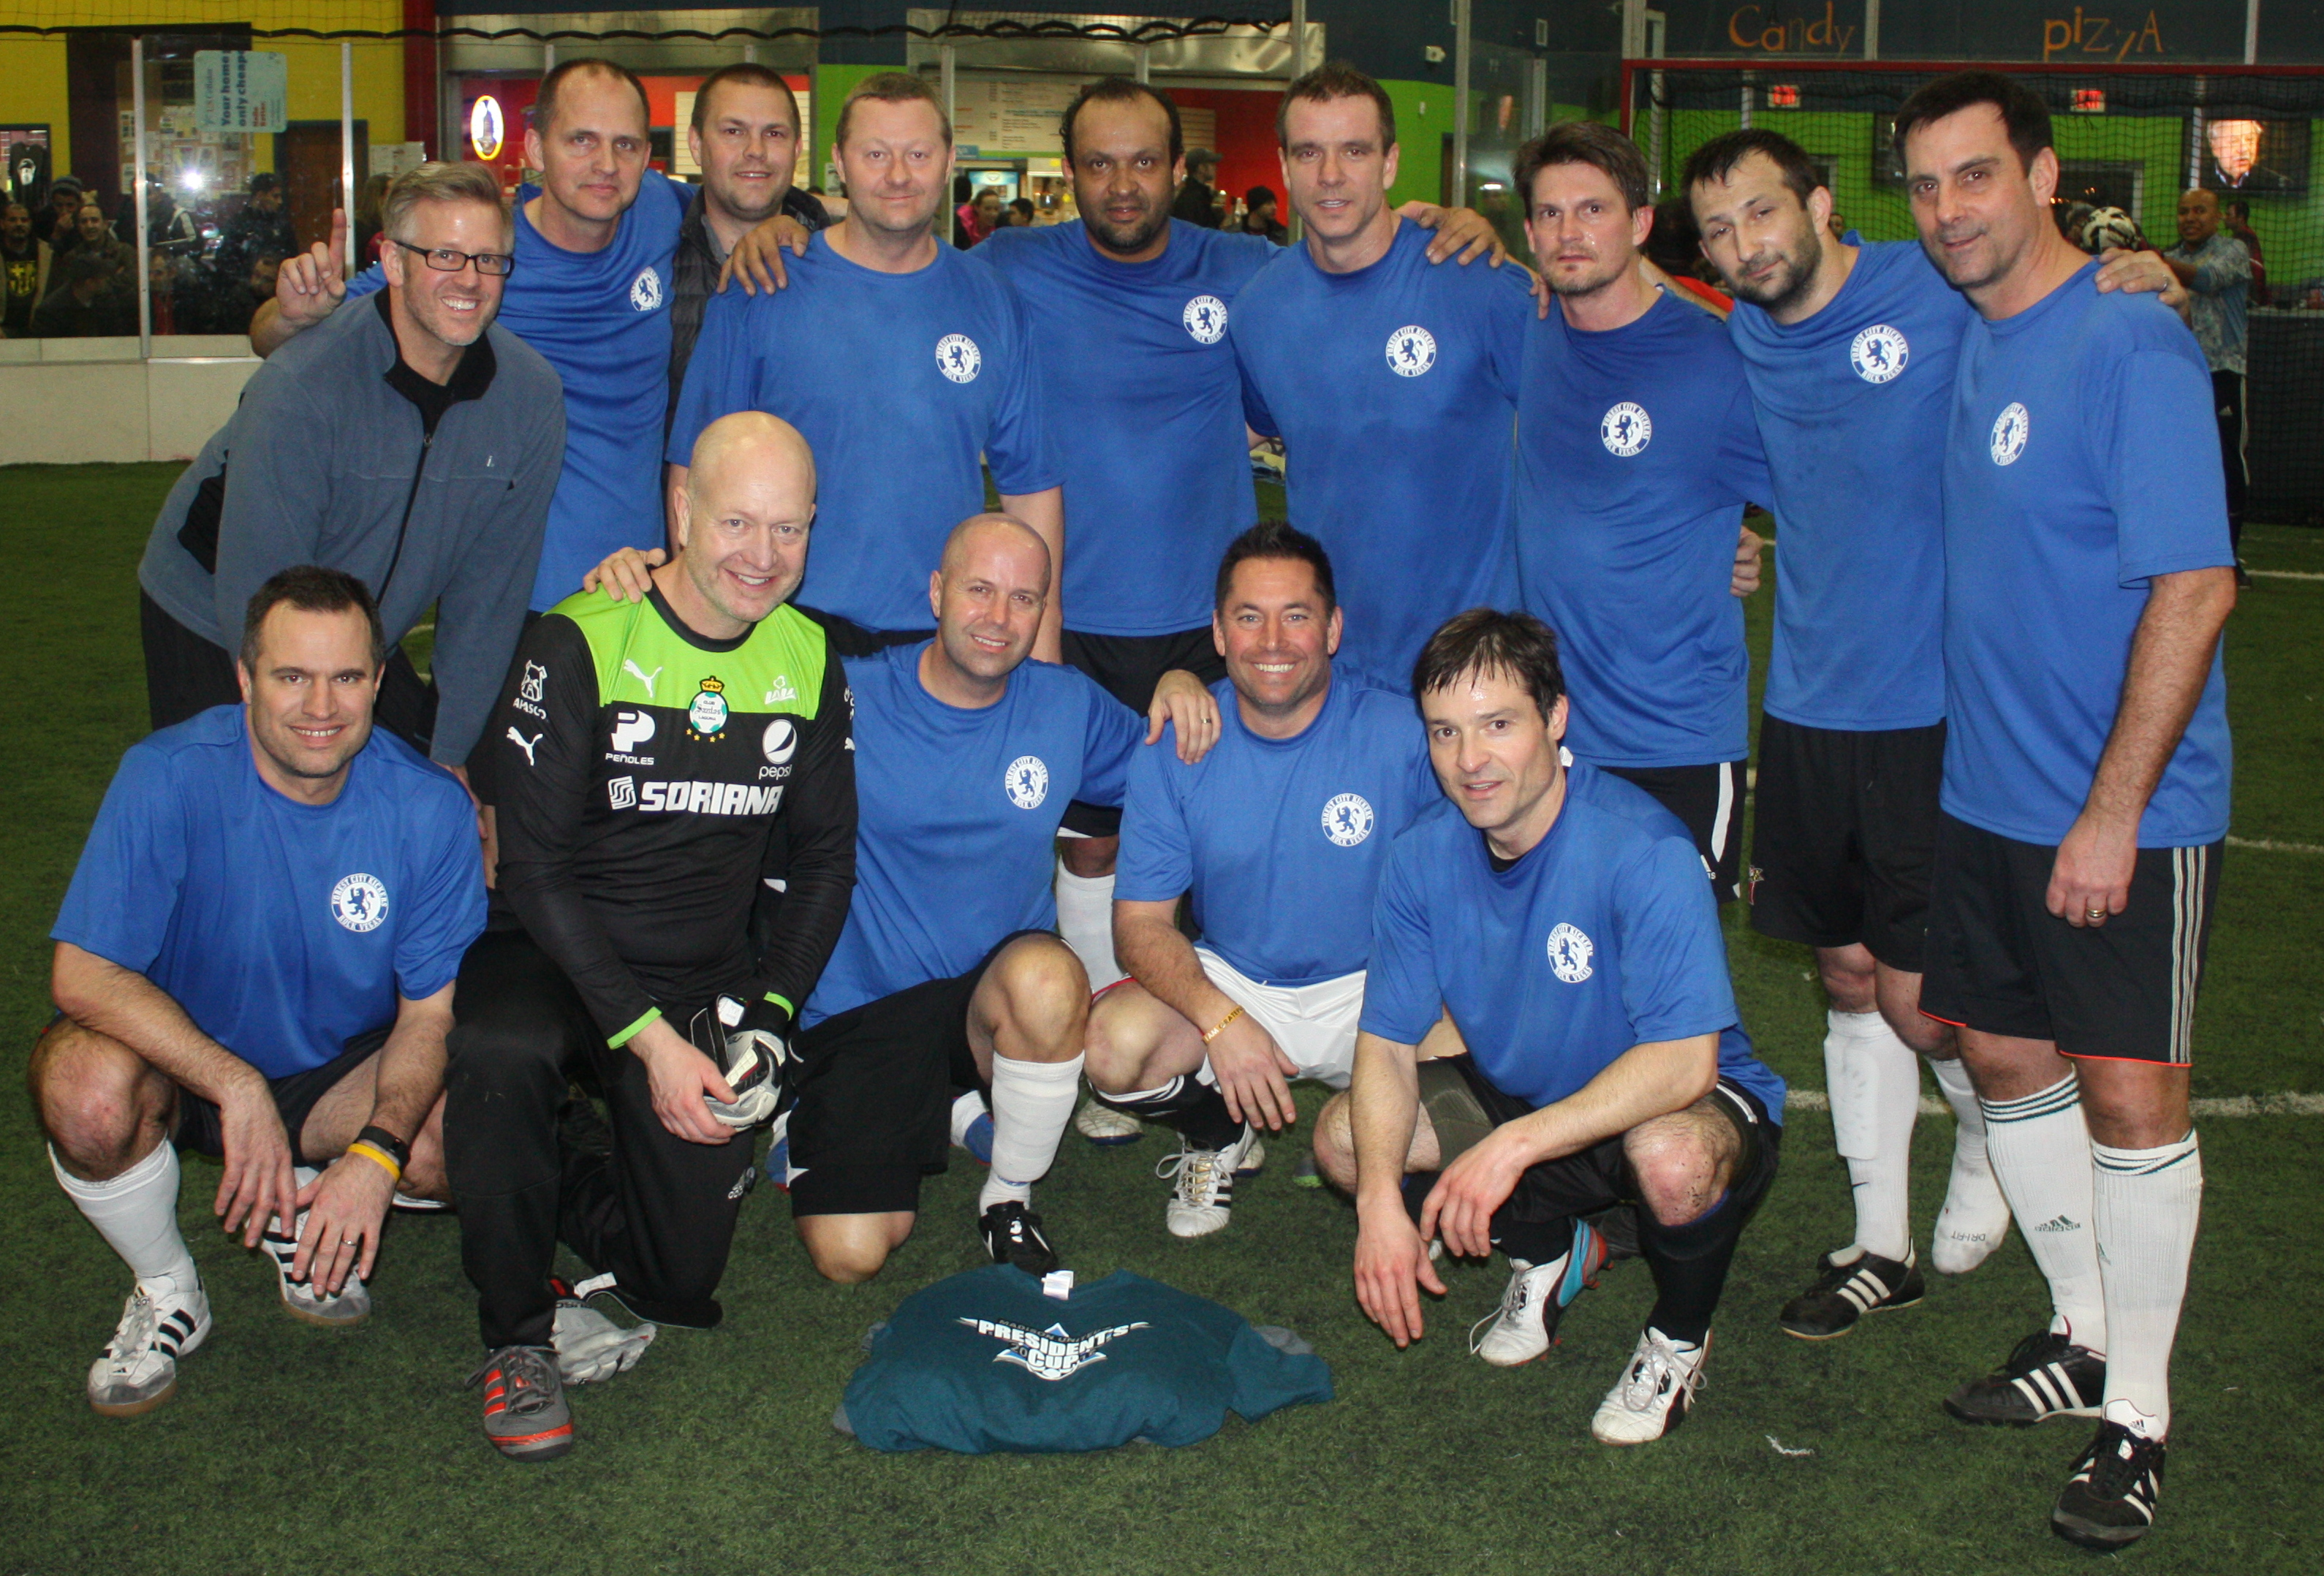 2015 President's Cup Men's Over-38 champions: Forest City Kickers